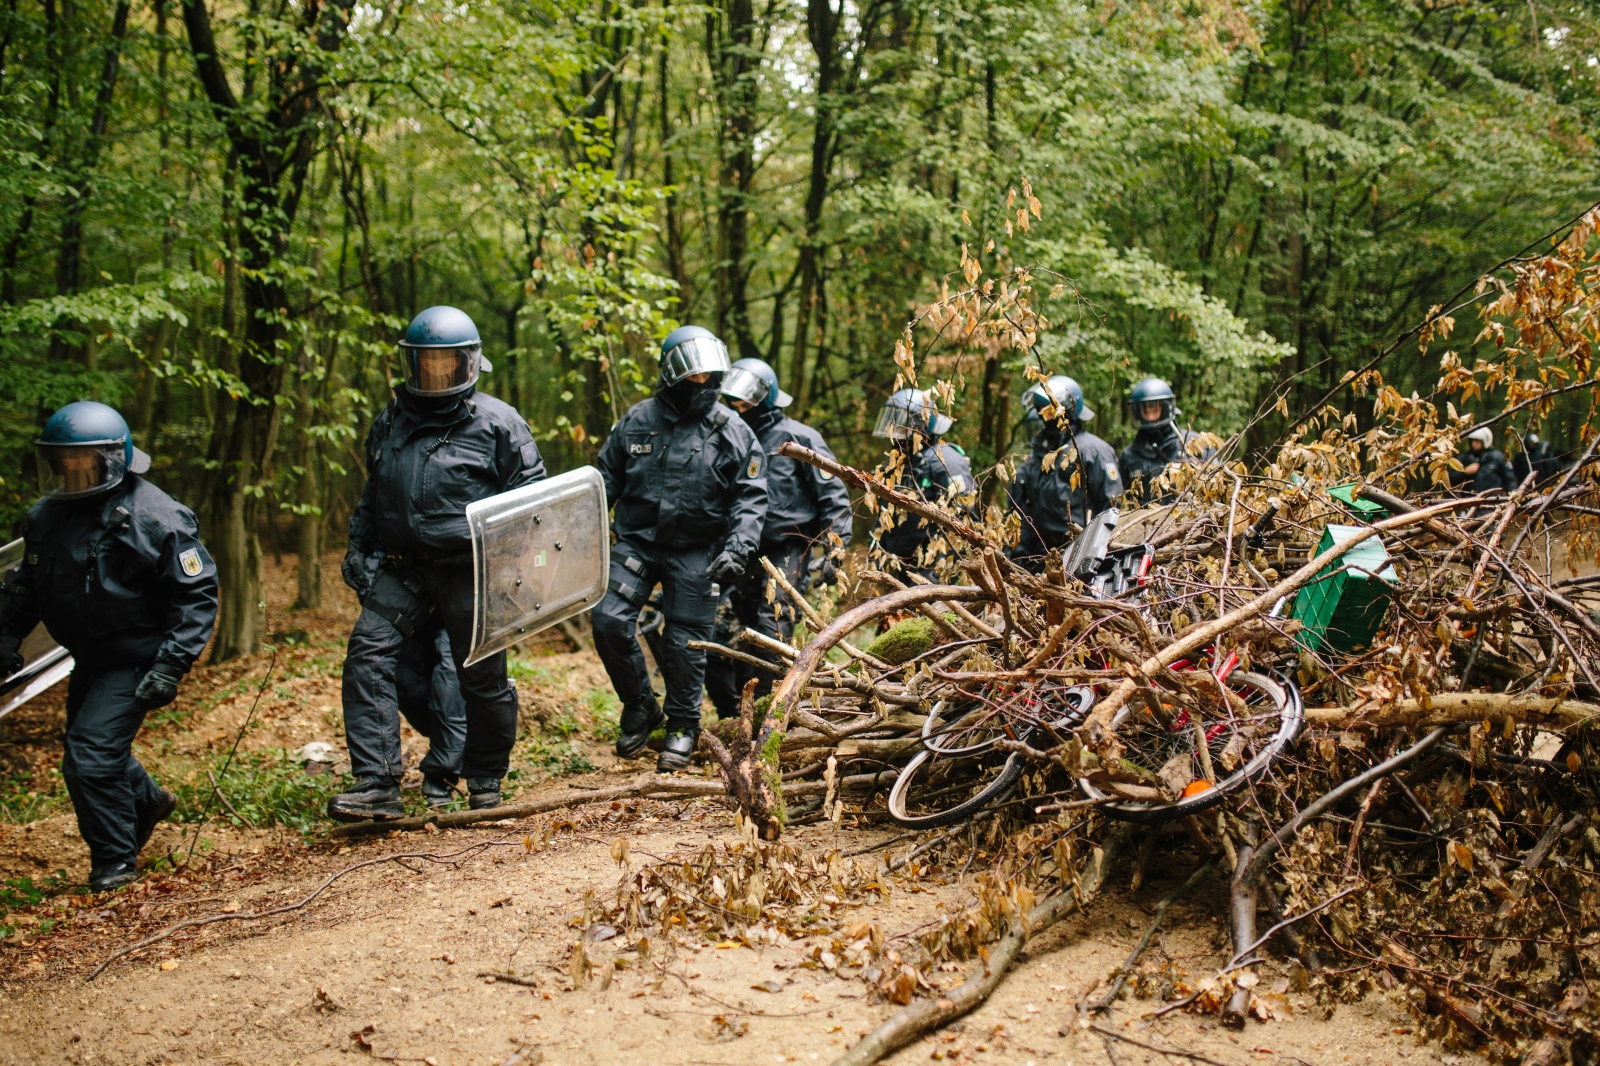 Policemen pass a block during the eviction of Hambach Forest Camp. 09-13-2018